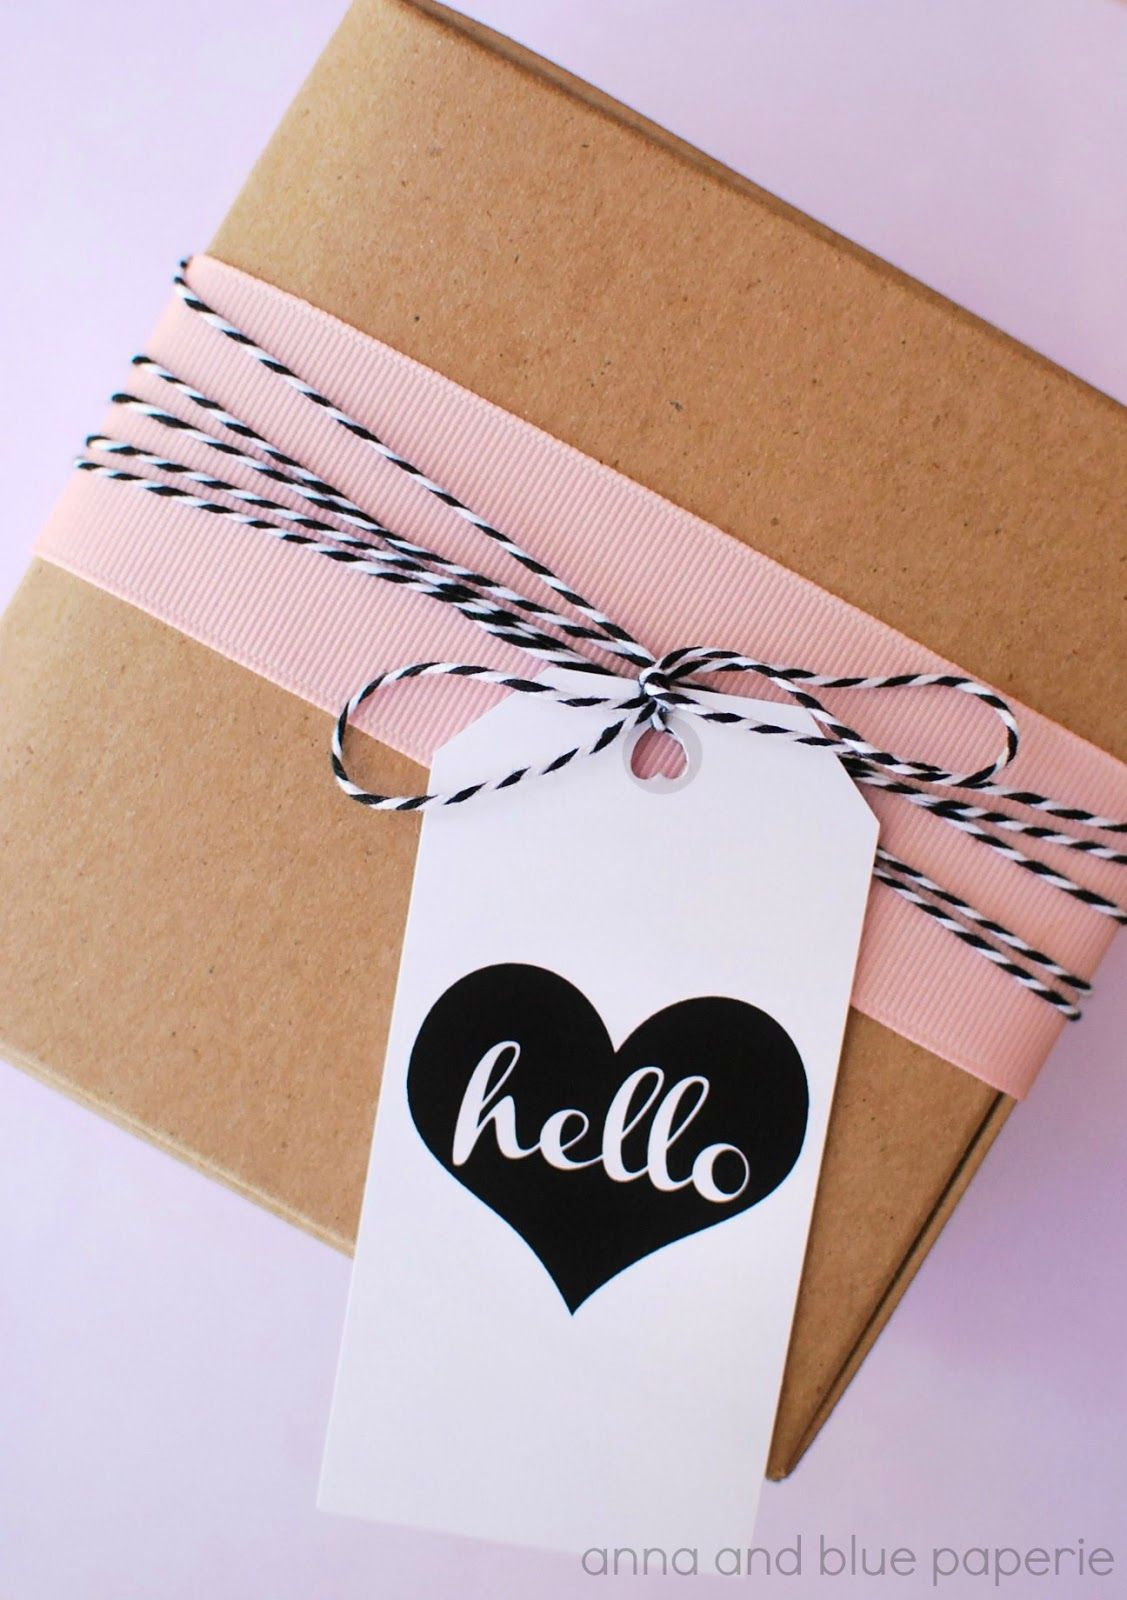 free printable gift tags @Anna Totten Totten Totten Totten Totten Totten and blue paperie